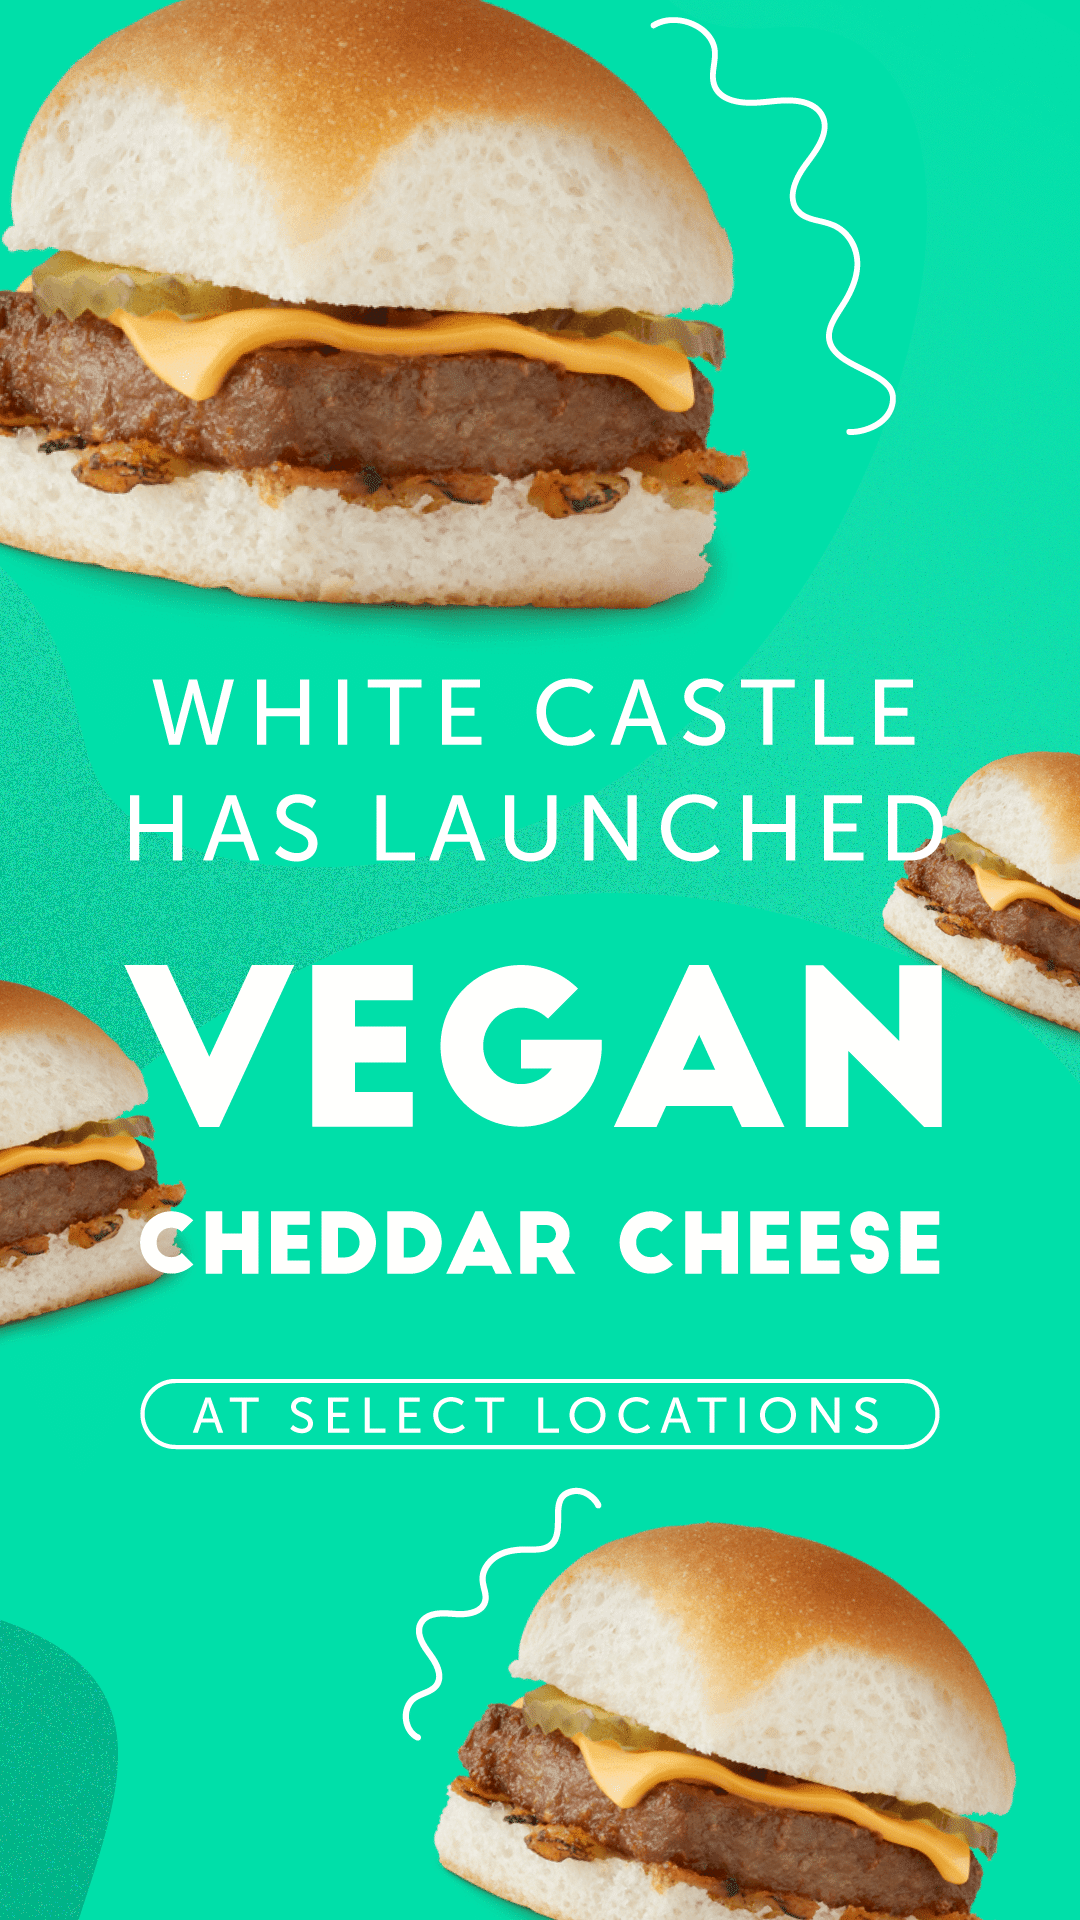 White Castle to Launch Vegan Cheddar Cheese at Select Locations